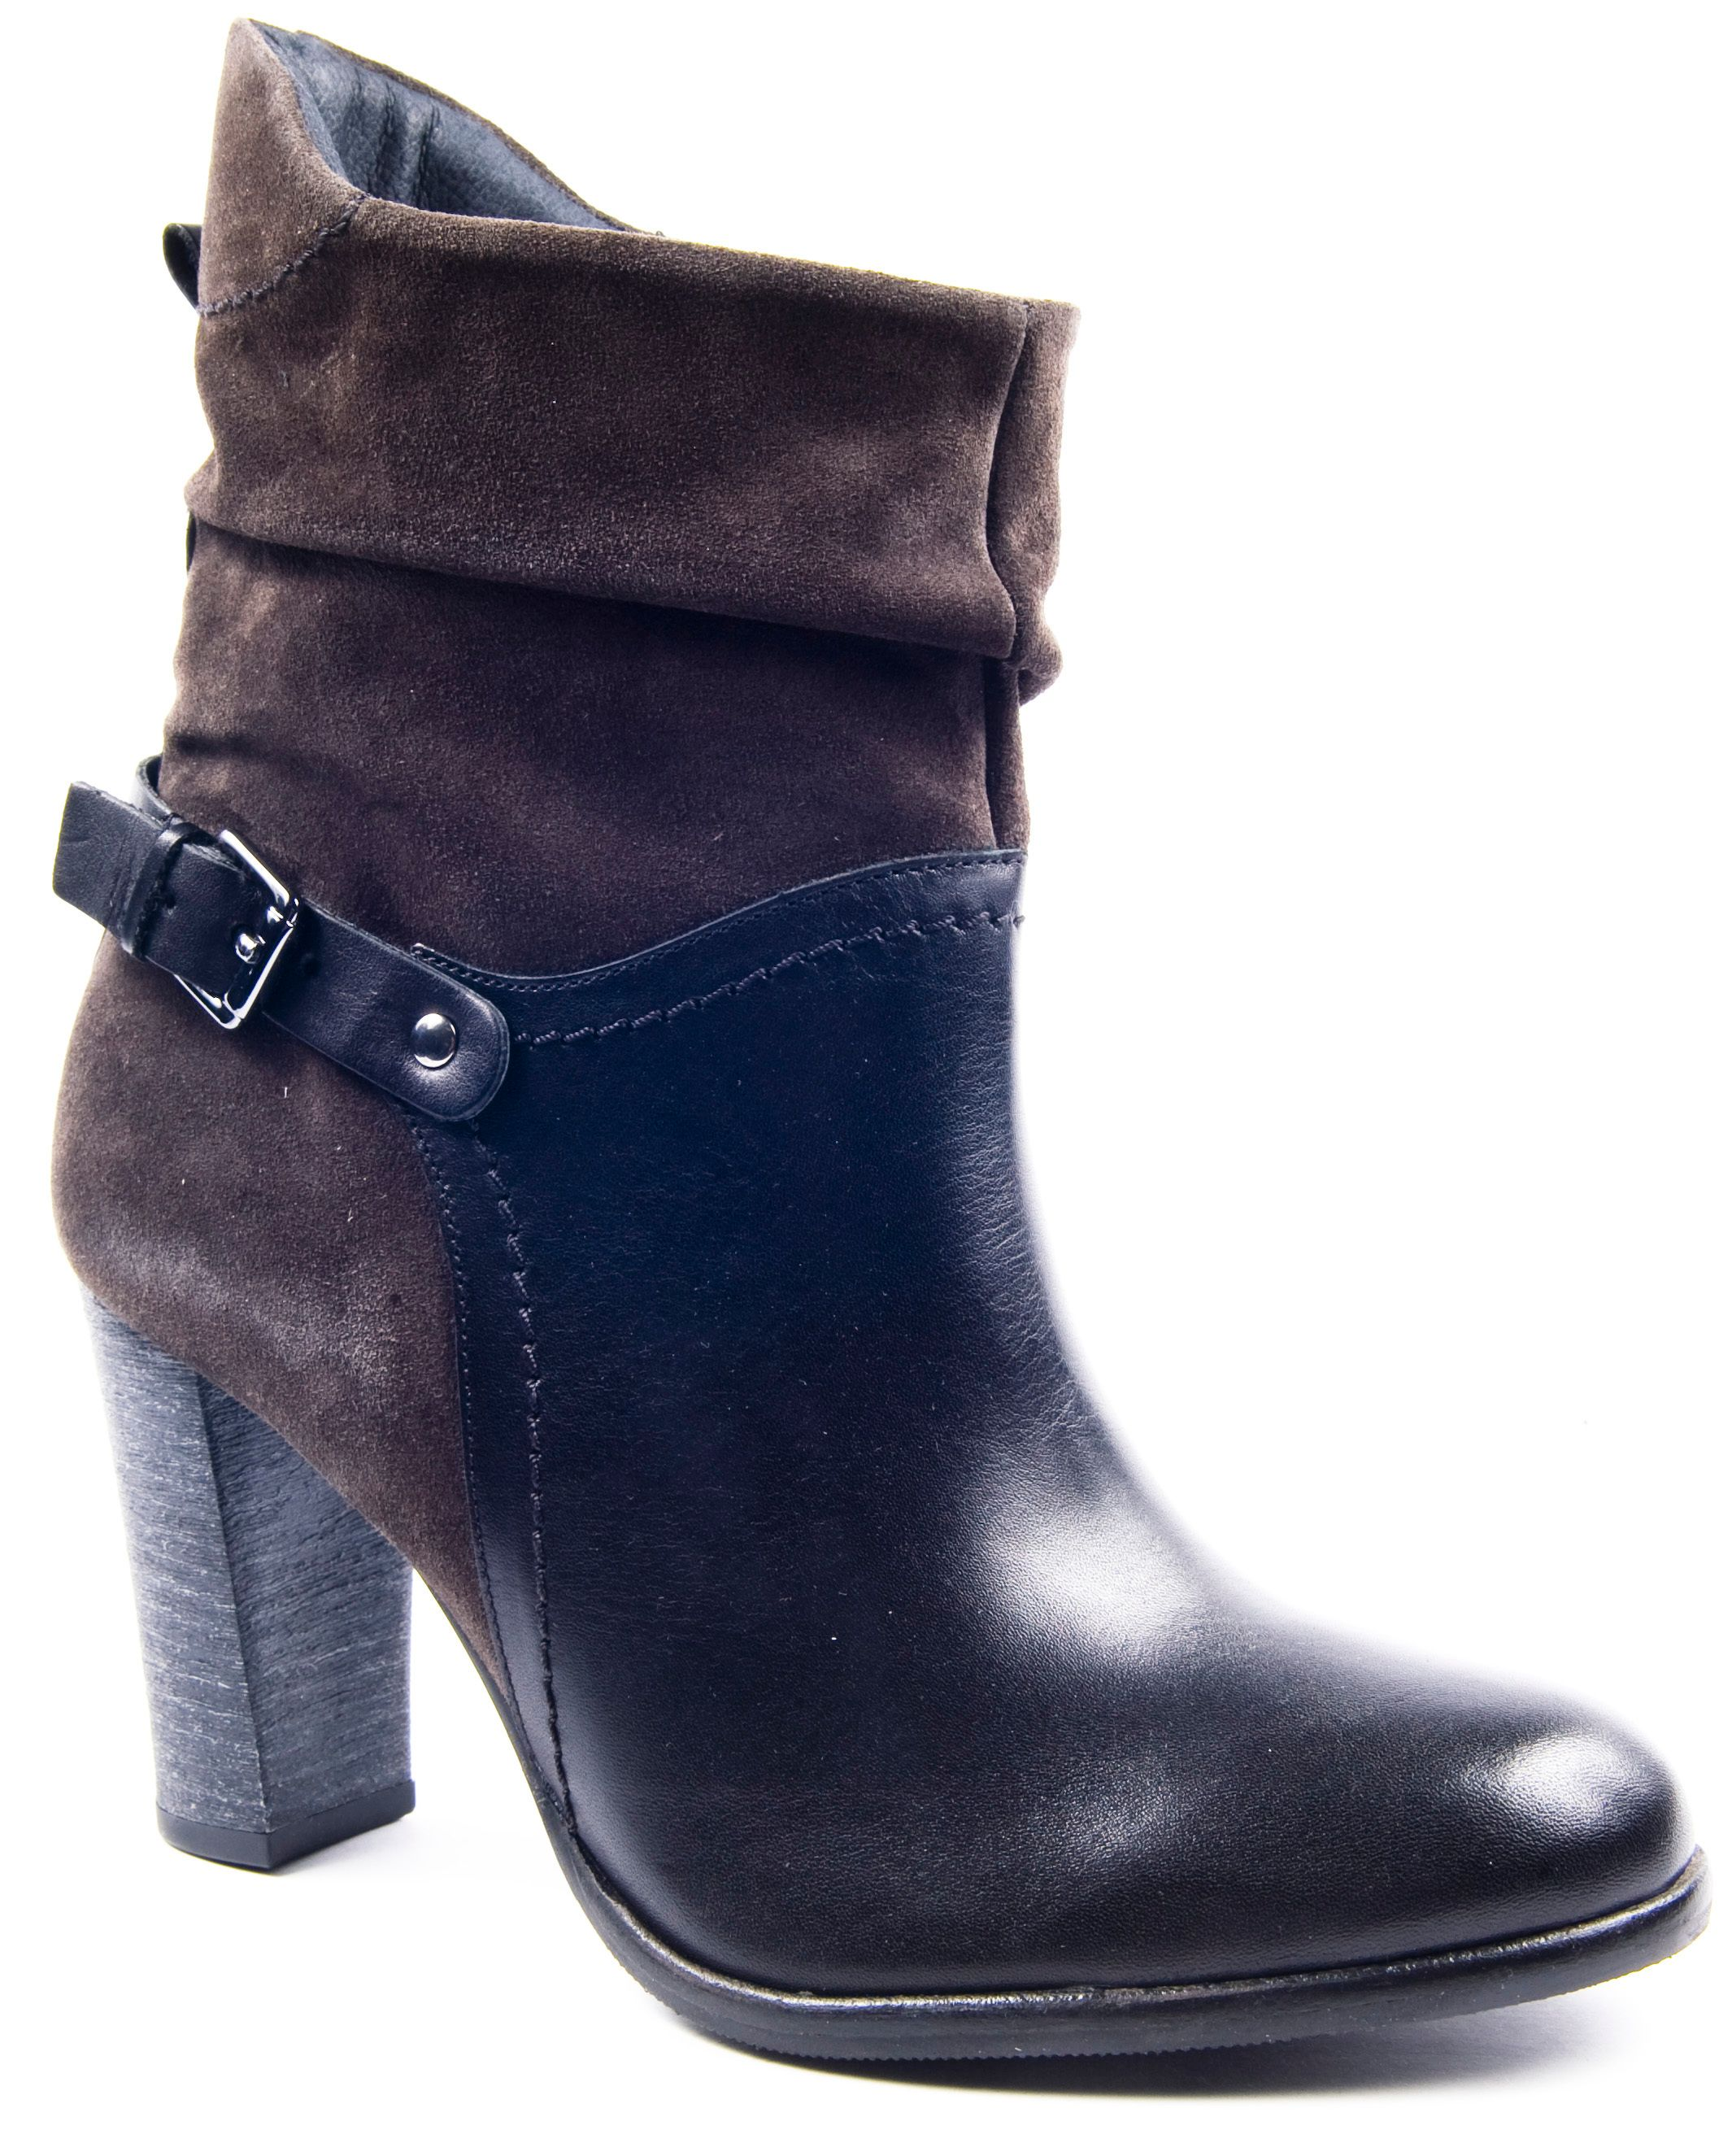 Osmond ankle boots